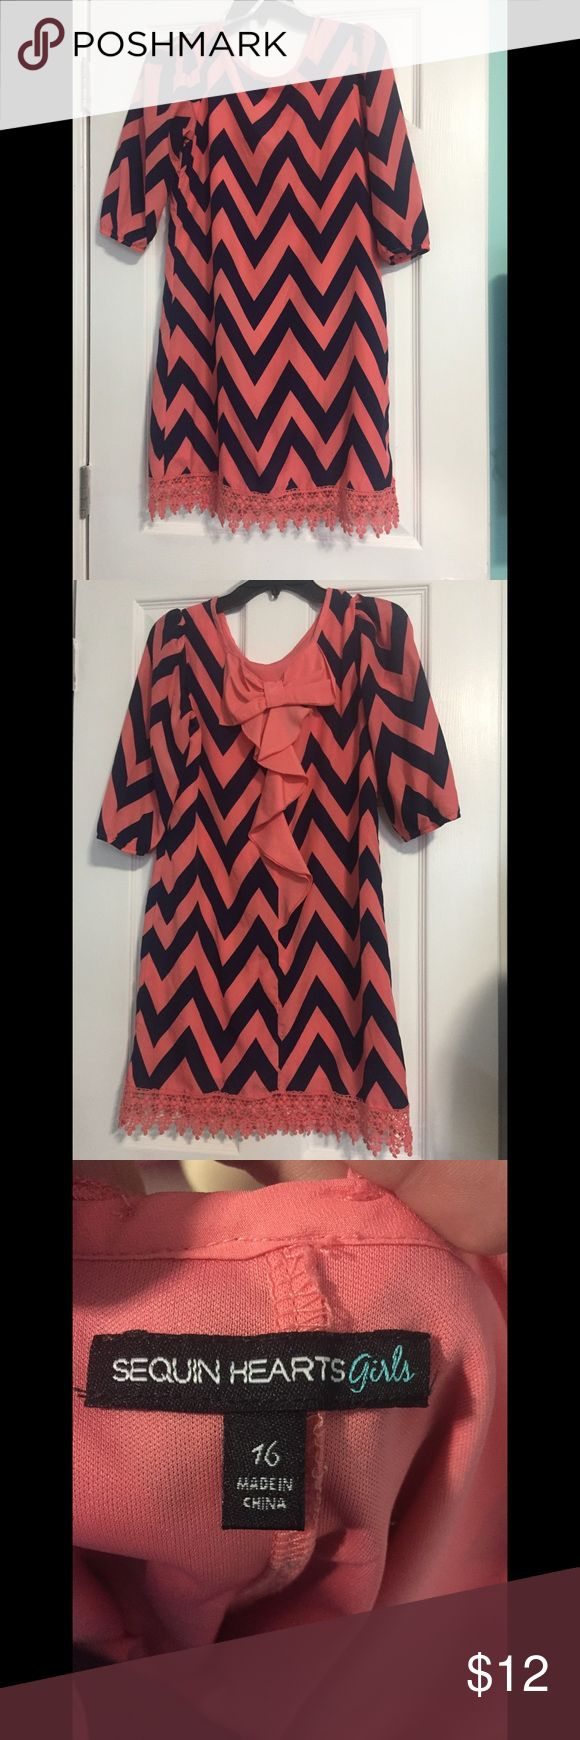 Girls Coral & Navy Chevron Dress Excellent condition ! This beautiful navy & Coral chevron dress is a must have for any tween's closet ! With a bow on the back & detailing around the bottom, it's impossible to pass up ! Dresses